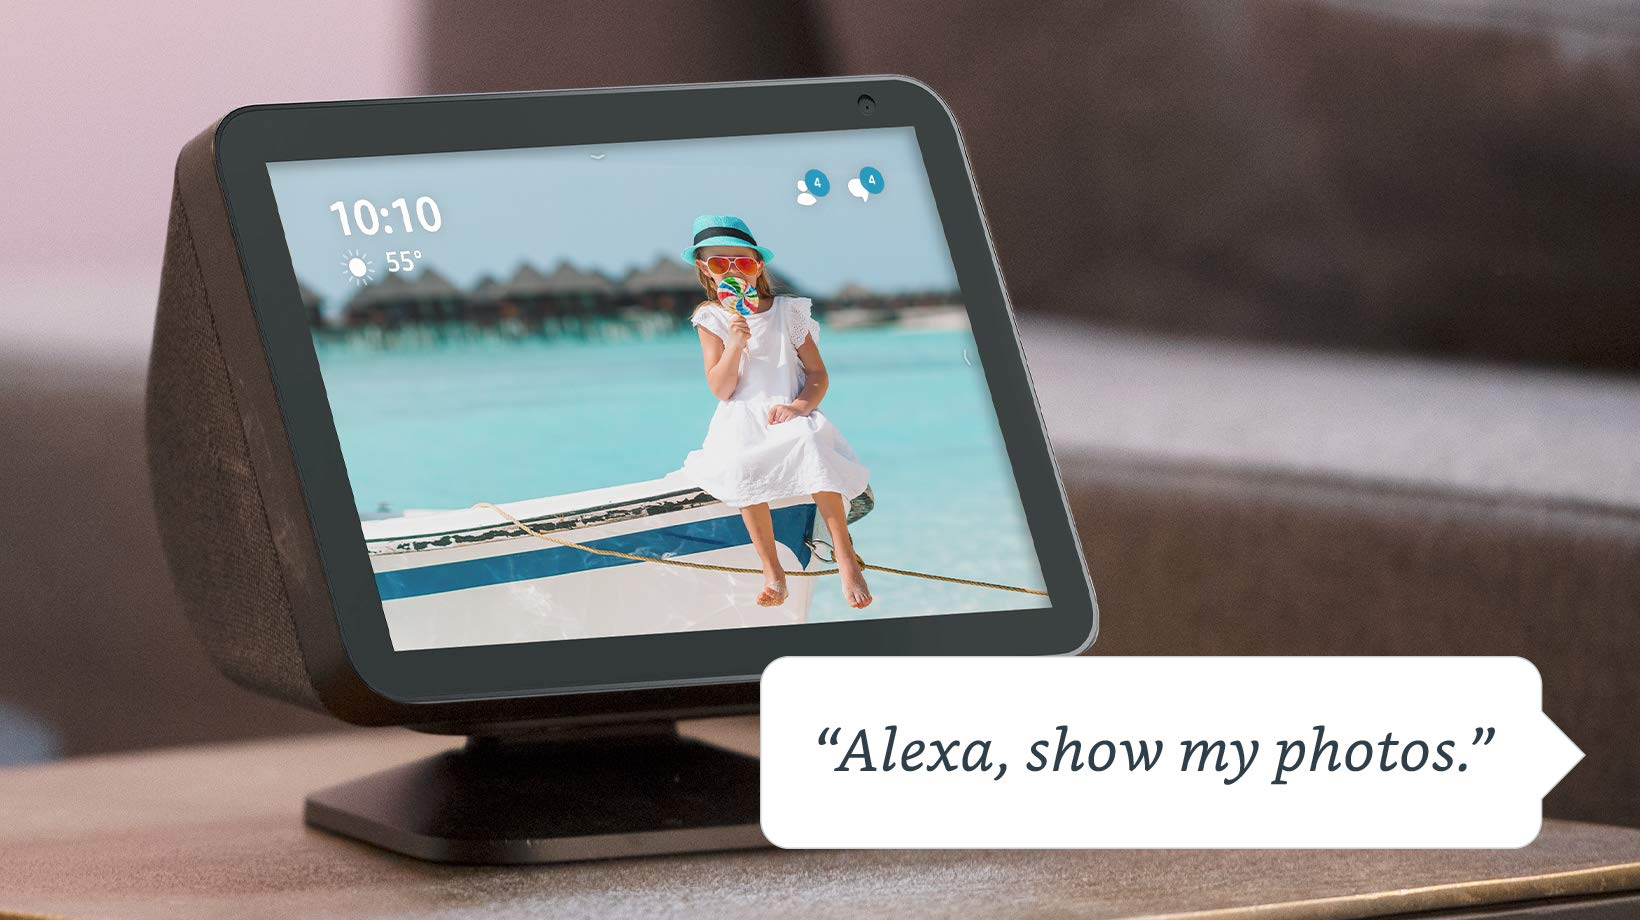 Your photo memories, showcased on your Echo Show device